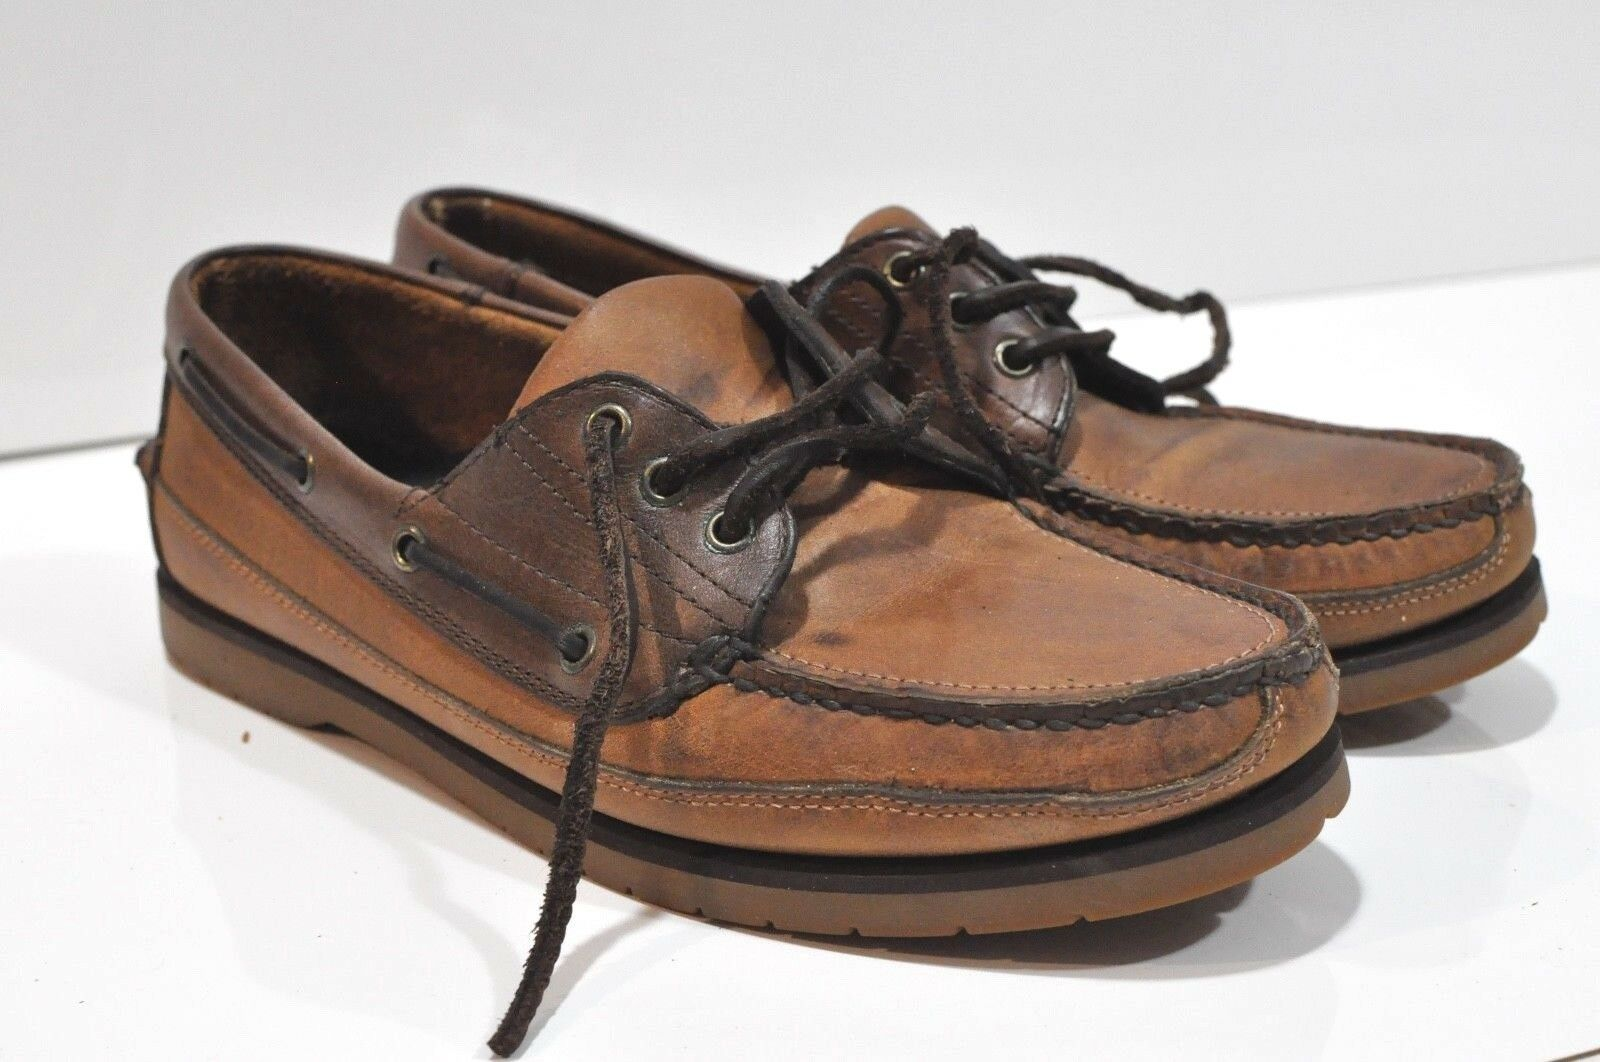 Brook Hollow Mens brown leather boat shoes size 9.5 with Goodyear Aquatred